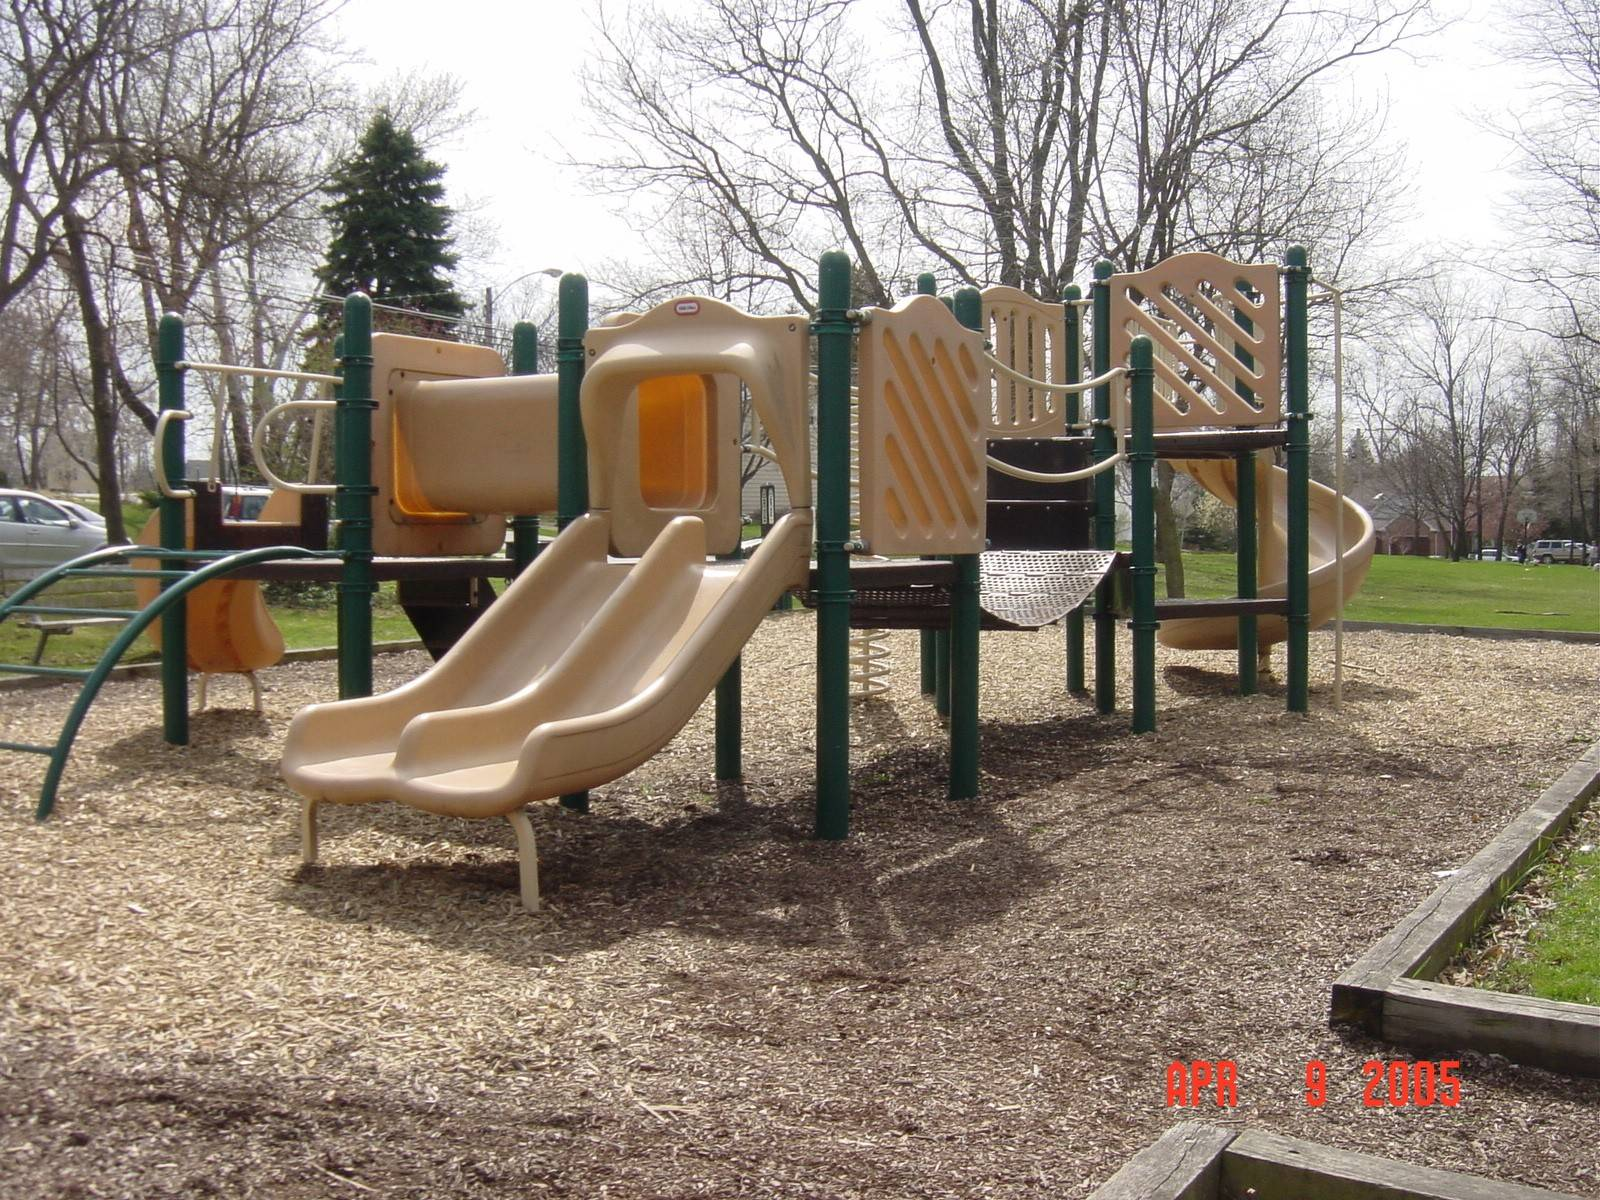 The playground equipment that recently was removed from Glen Ellyn's Danby Park was more than 20 years old, officials say. A nonprofit group will refurbish it and then give it to a place that otherwise might not have such equipment.